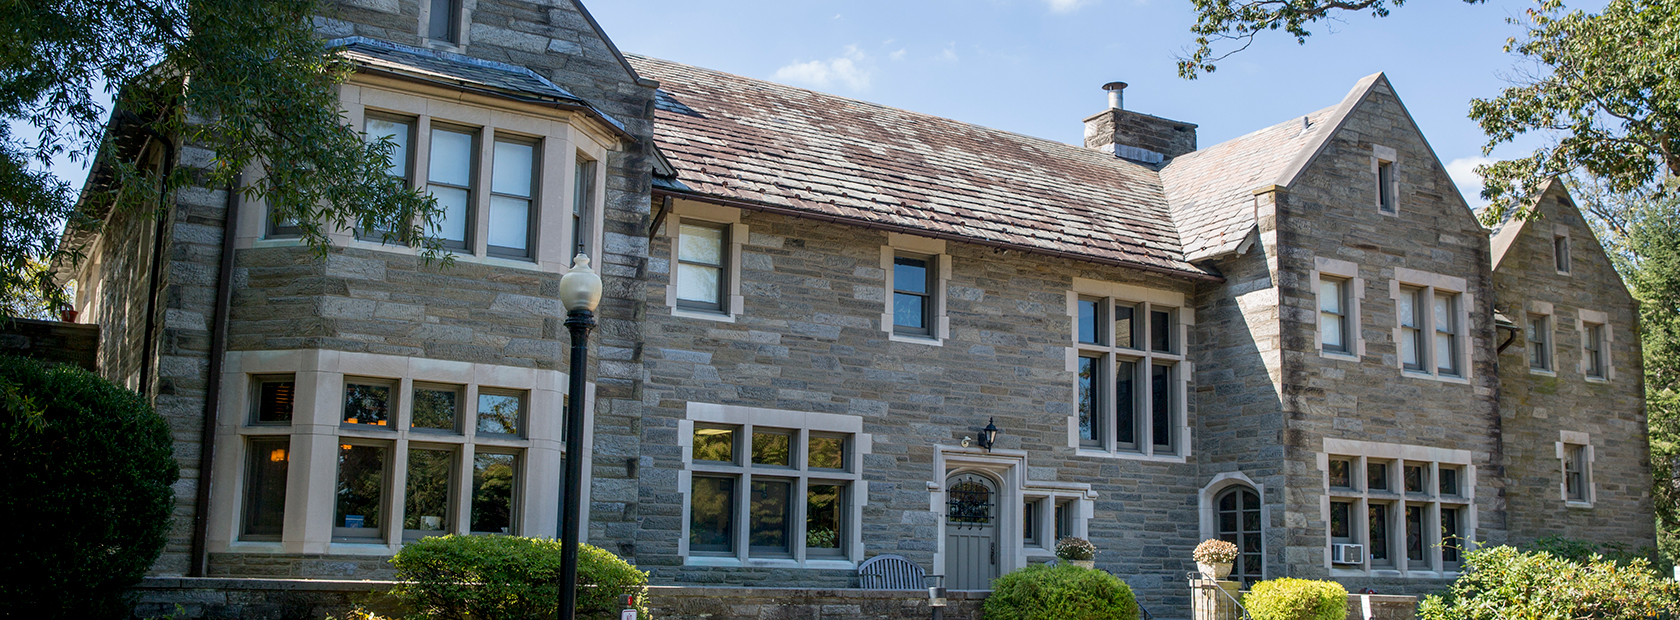 Ls Home dc home | delaware county christian school